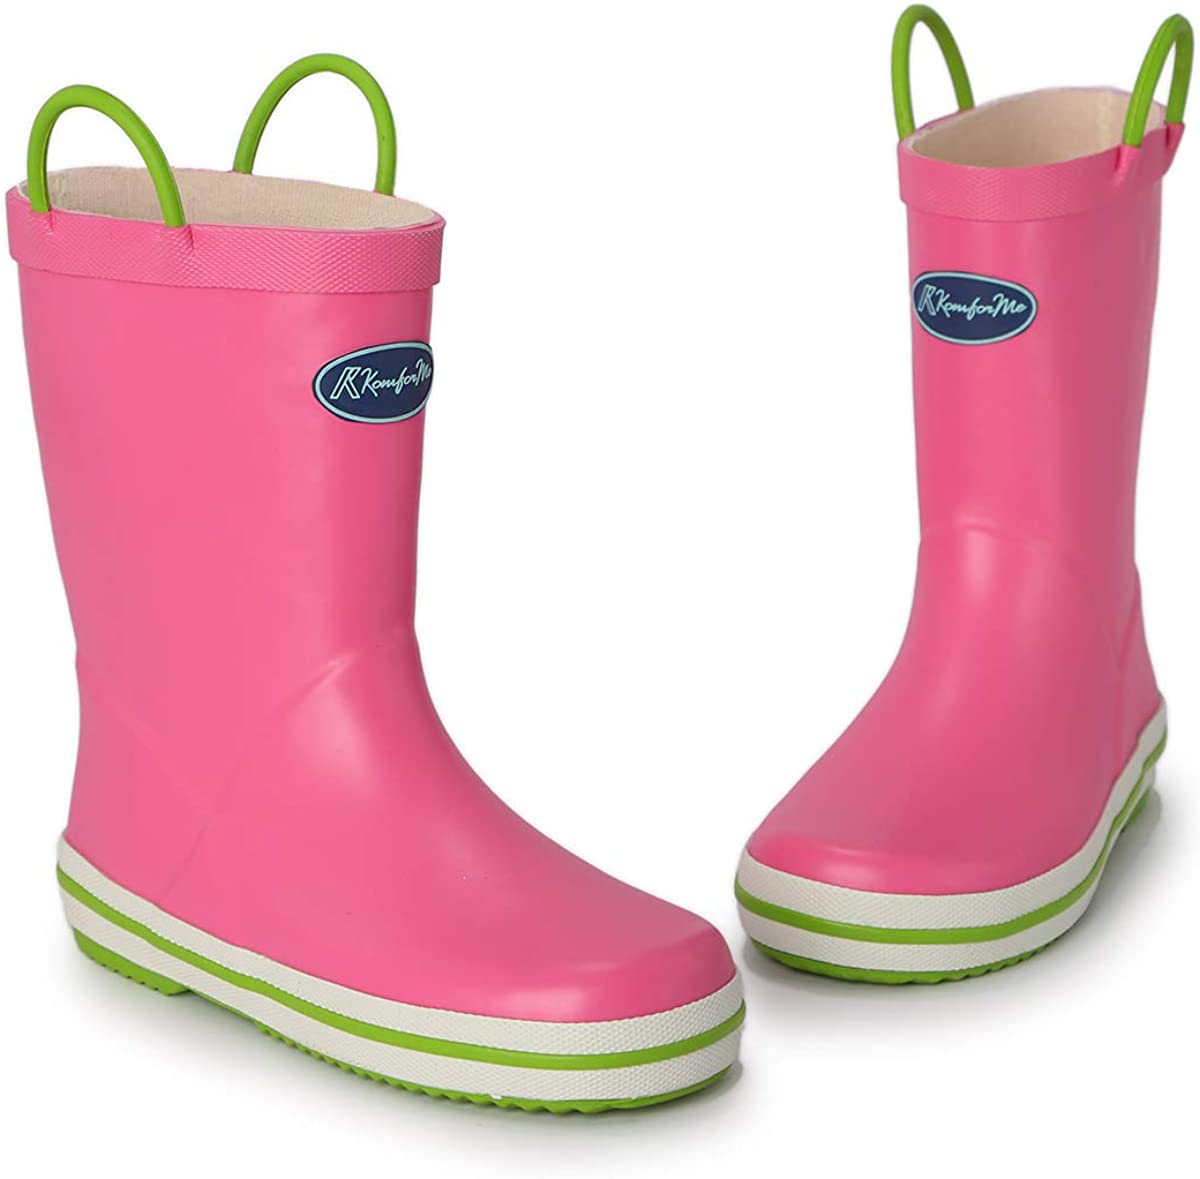 KomForme Kids Matte Rain Boots Waterproof Rubber Boots with Reflective Stripes and Easy-on Handles